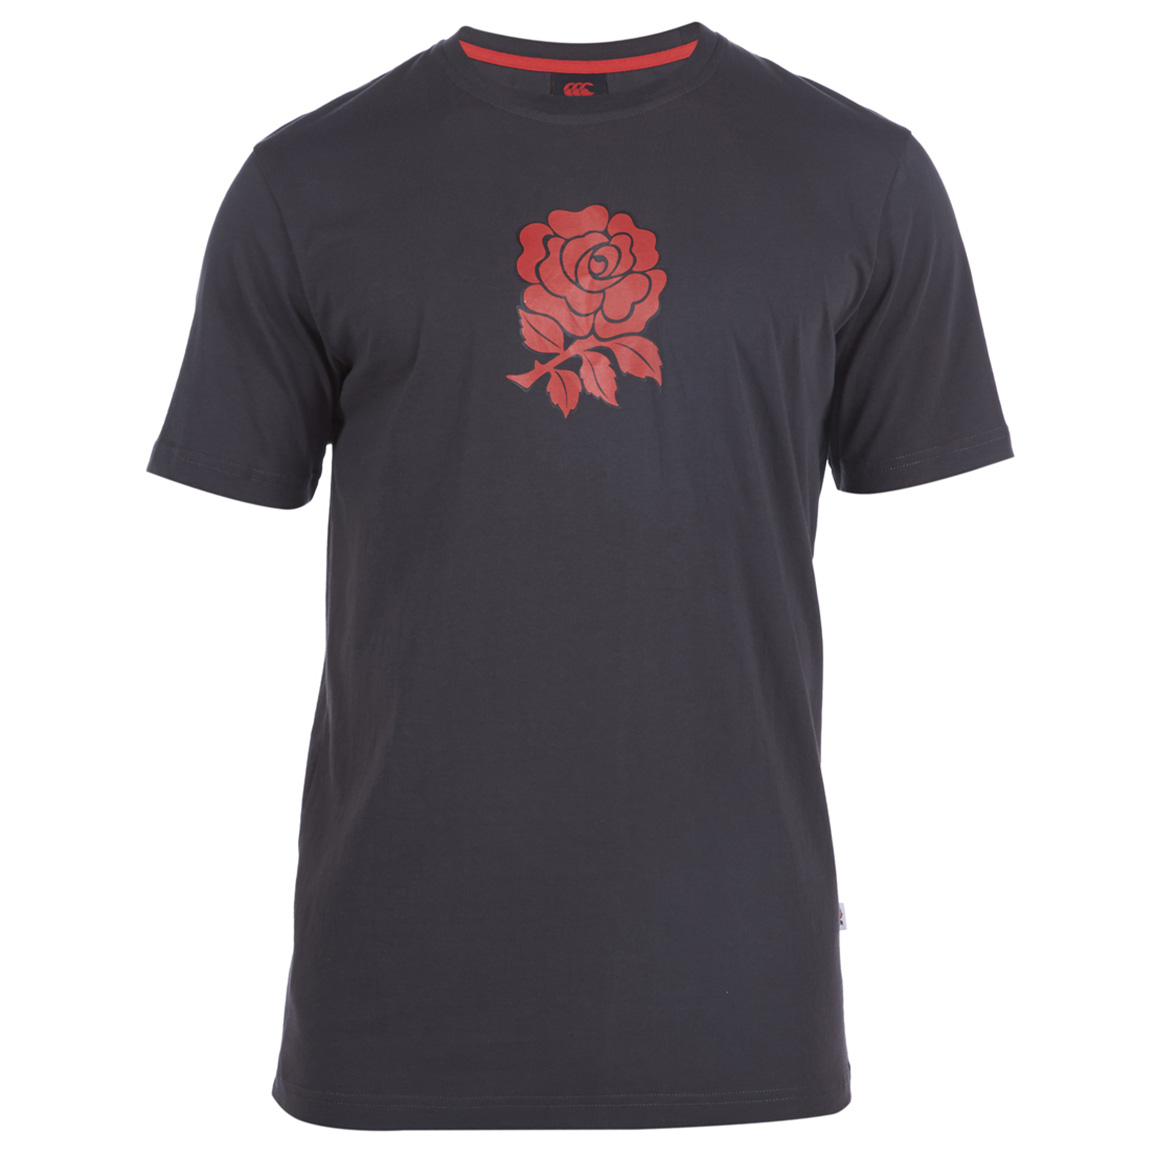 England Cotton Graphic T-Shirt Grey